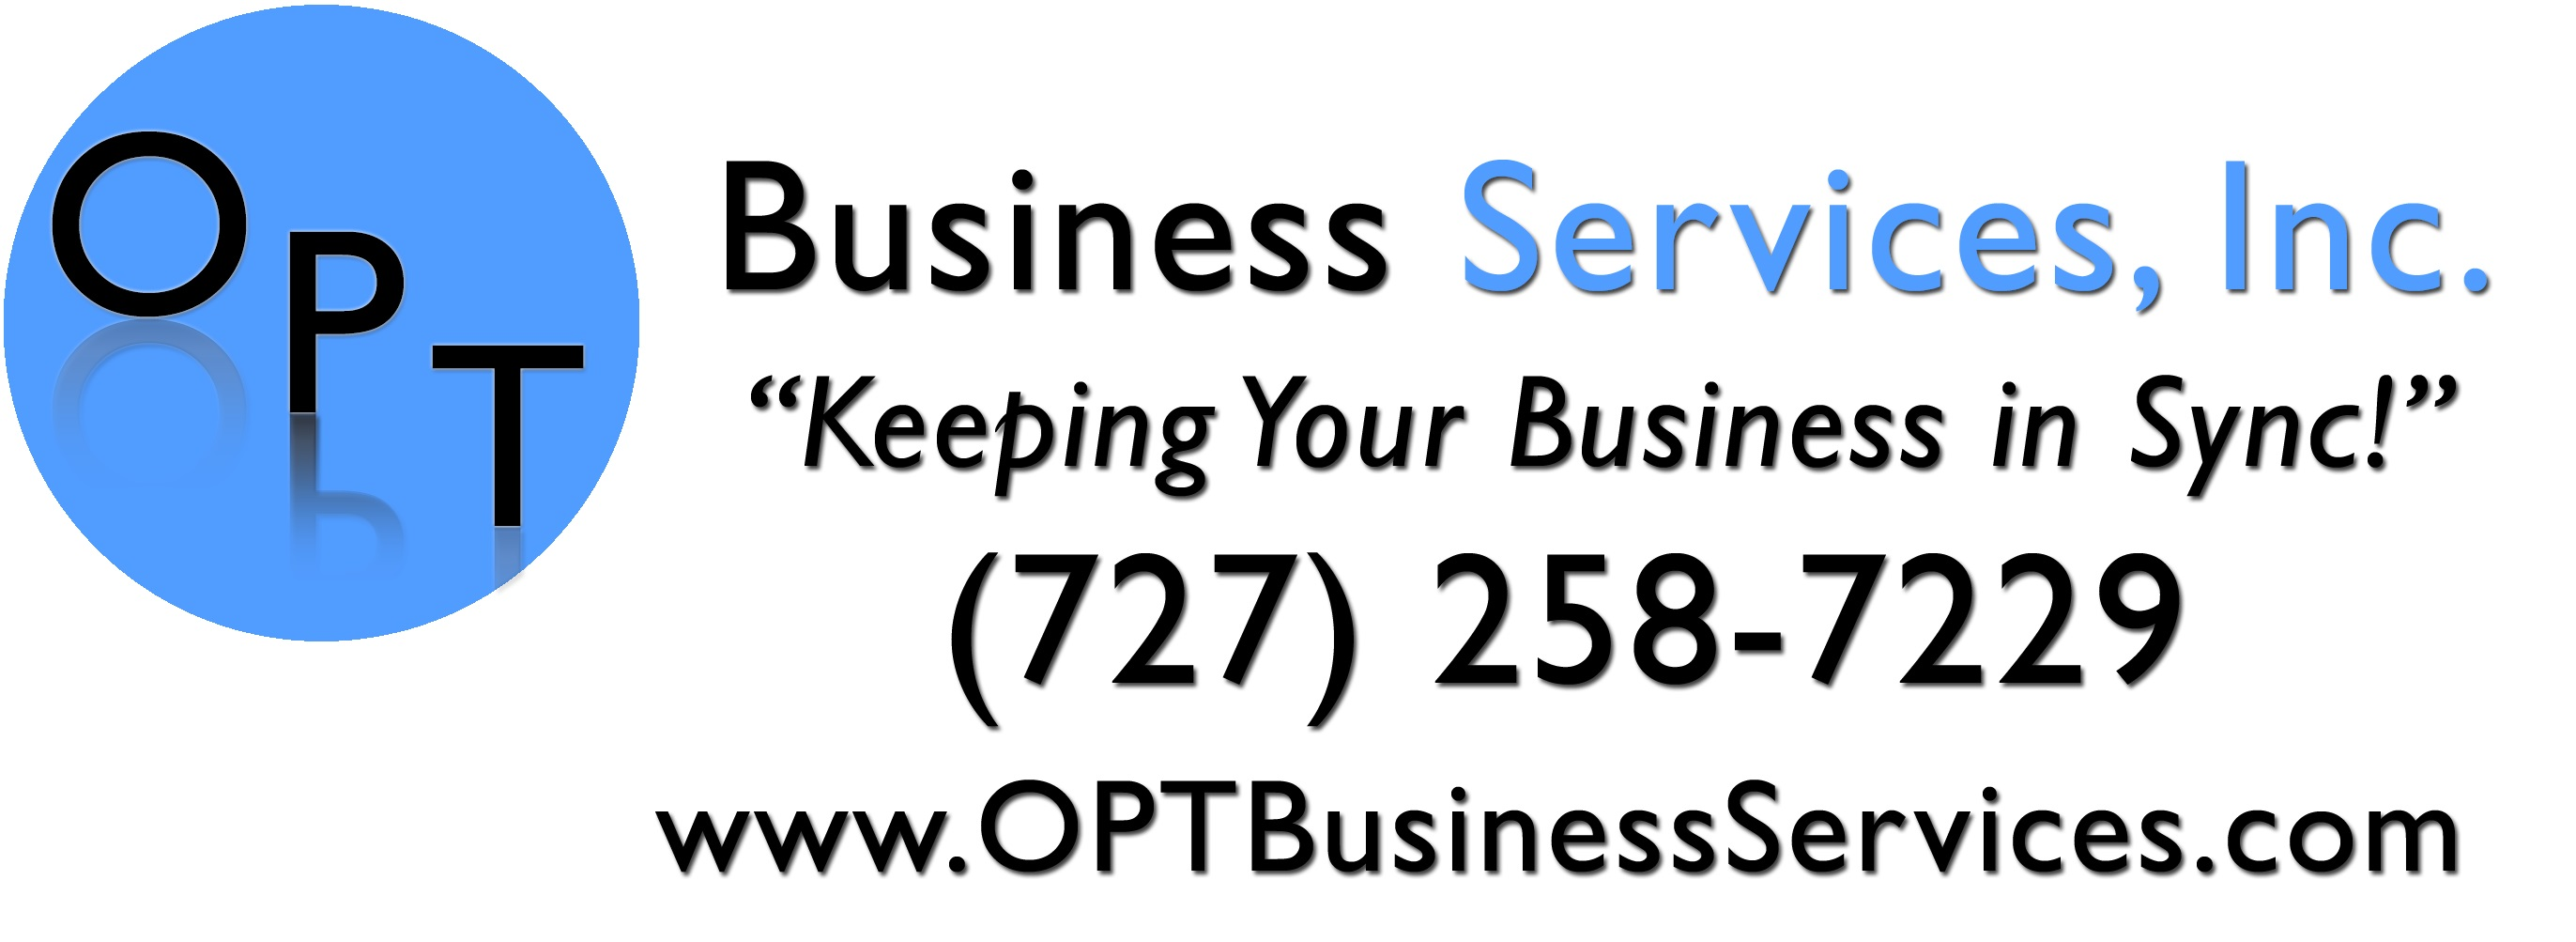 OPT Business Services